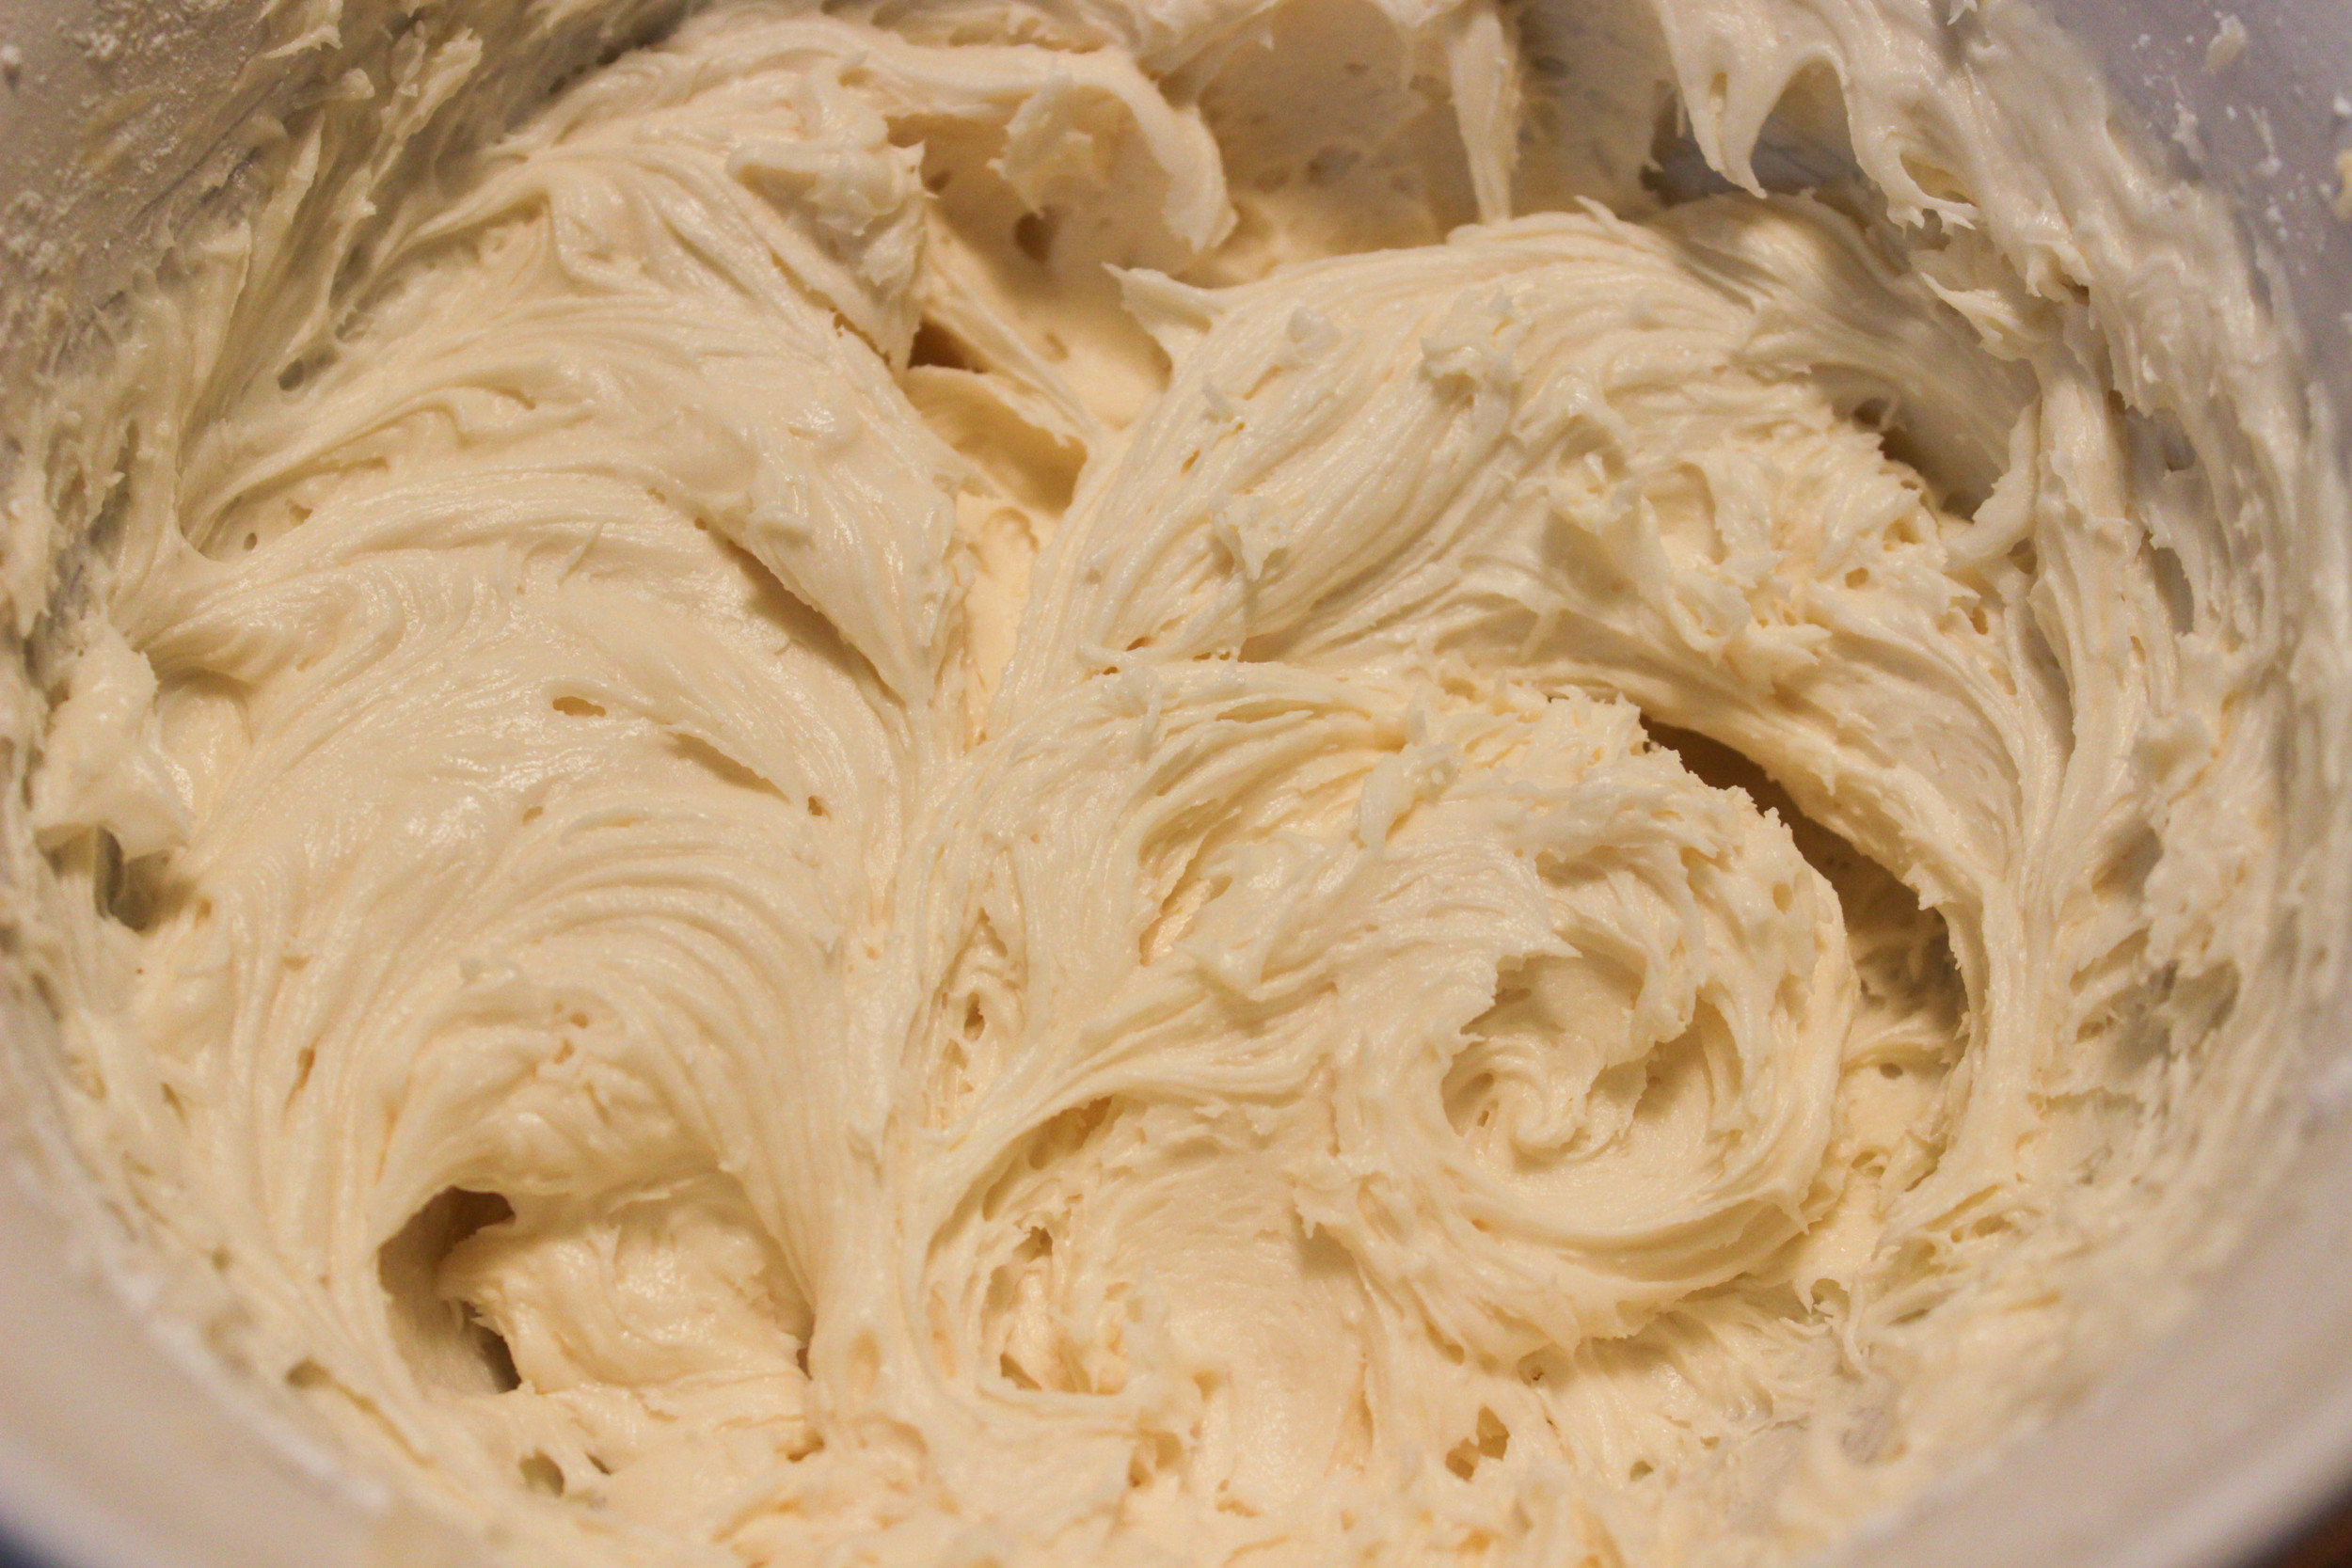 ...it's smooth and creamy (and delicious)!